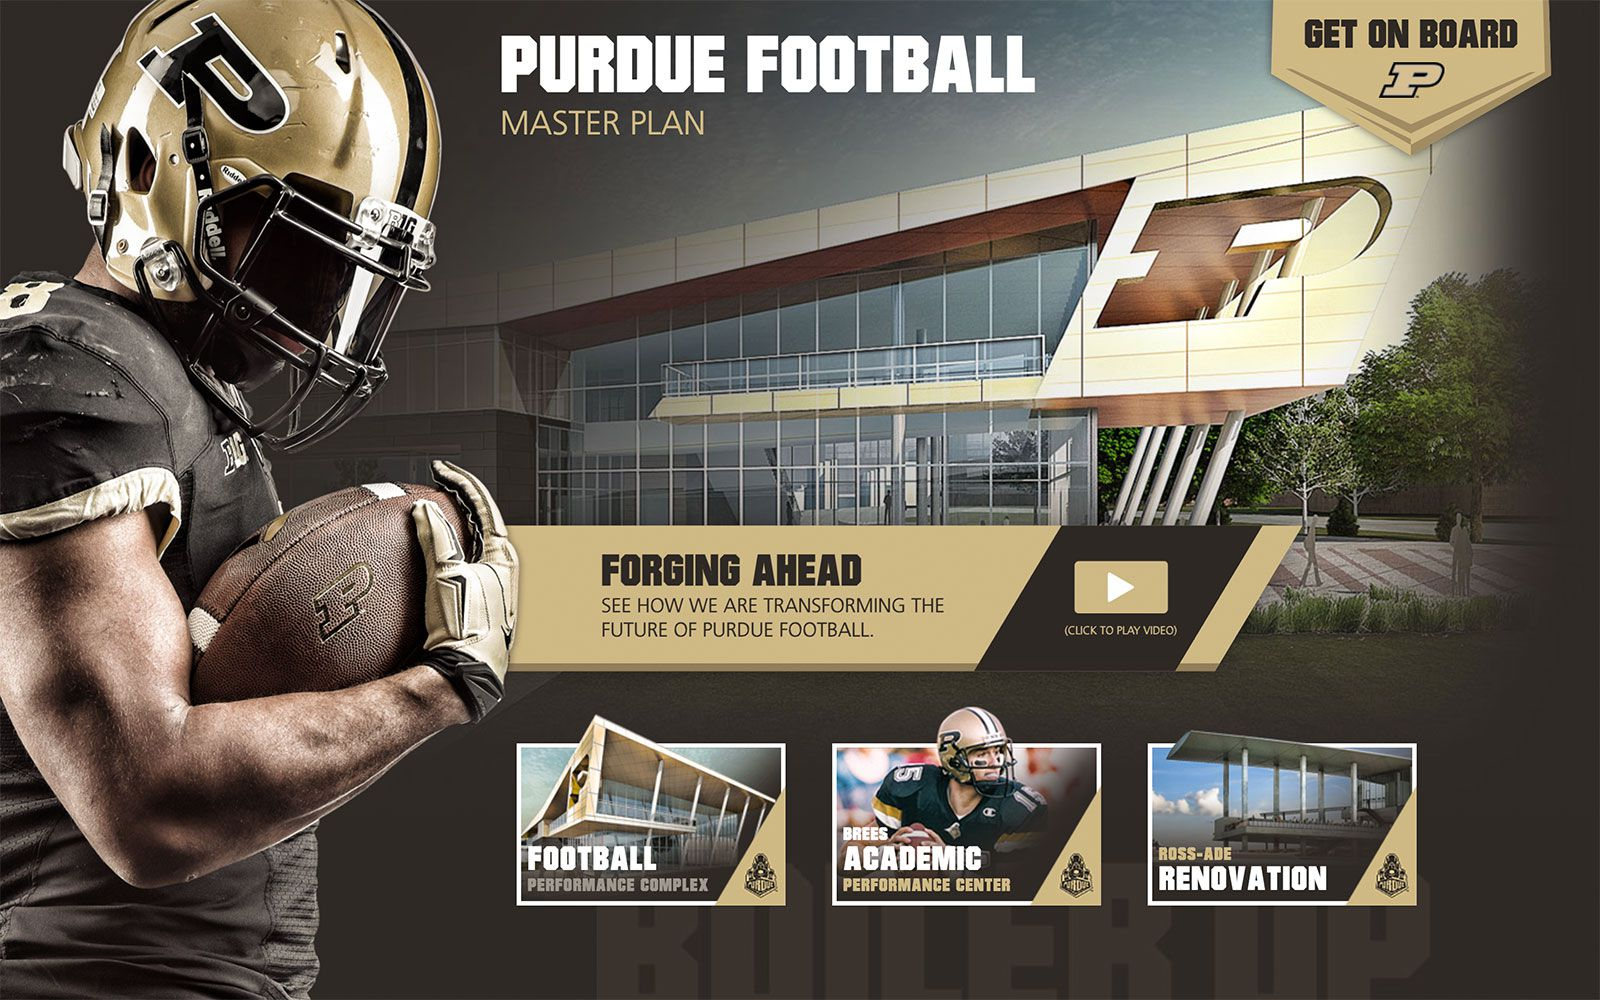 Football Capital Campaign Website | <a href='http://purduefootballmasterplan.com/' target='_blank'>Visit Site <i class='nc-icon-glyph arrows-1_share-91'></i></a><br><span>Purdue University</span>